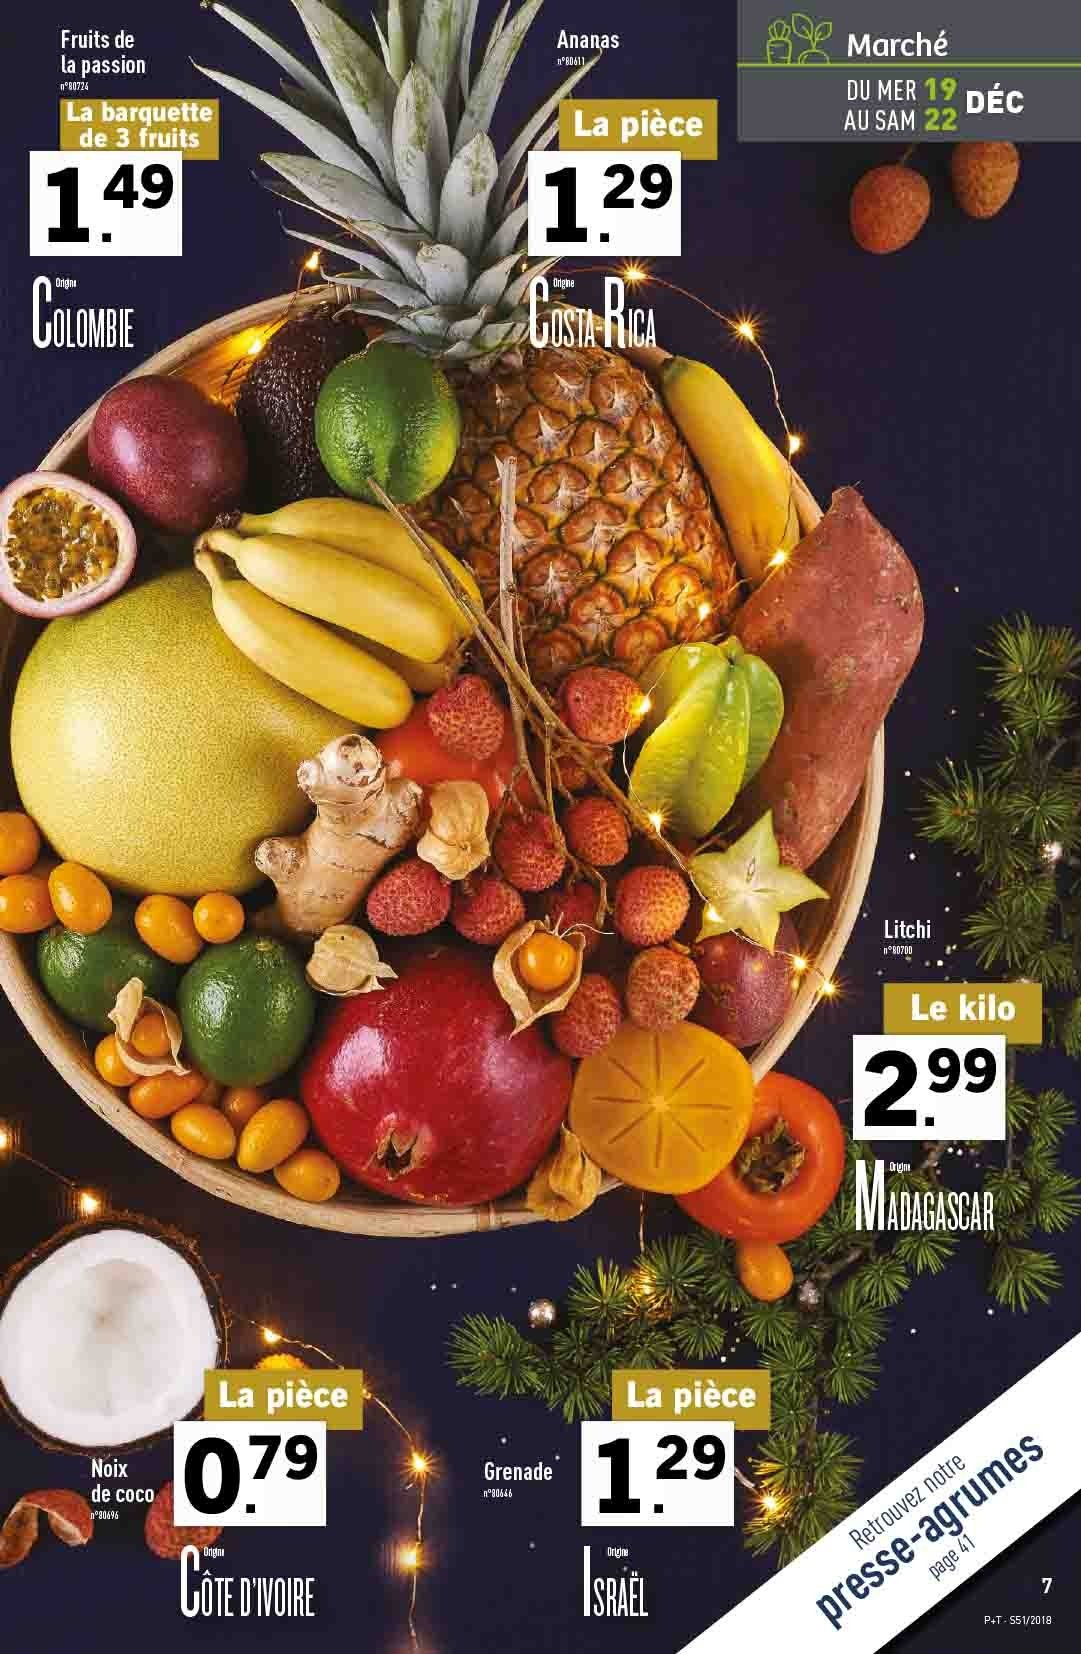 Catalogue Lidl - 19.12.2018 - 24.12.2018. Page 7.